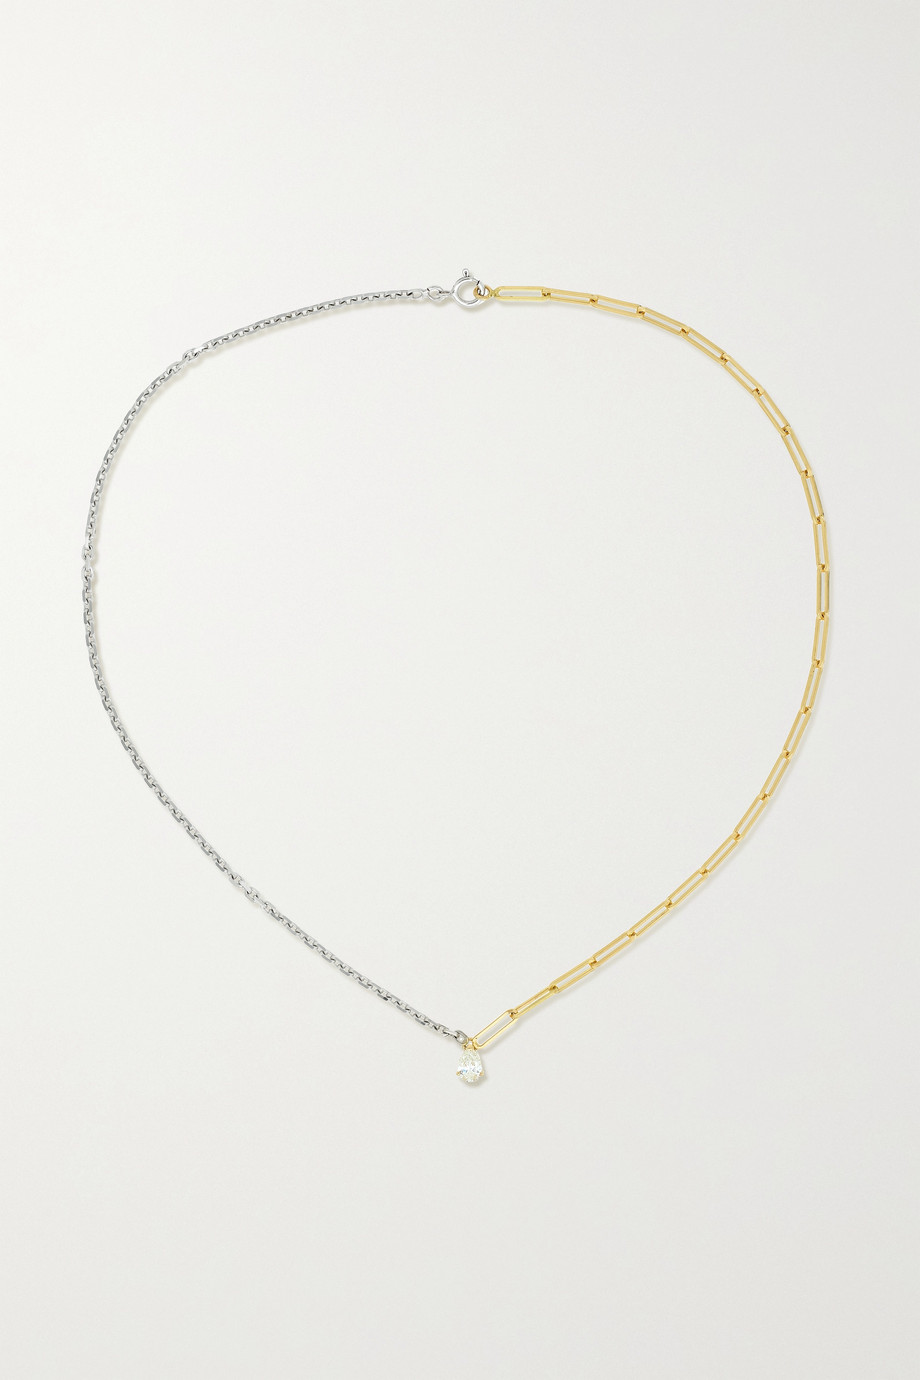 Yvonne Léon 18-karat yellow and white gold diamond necklace